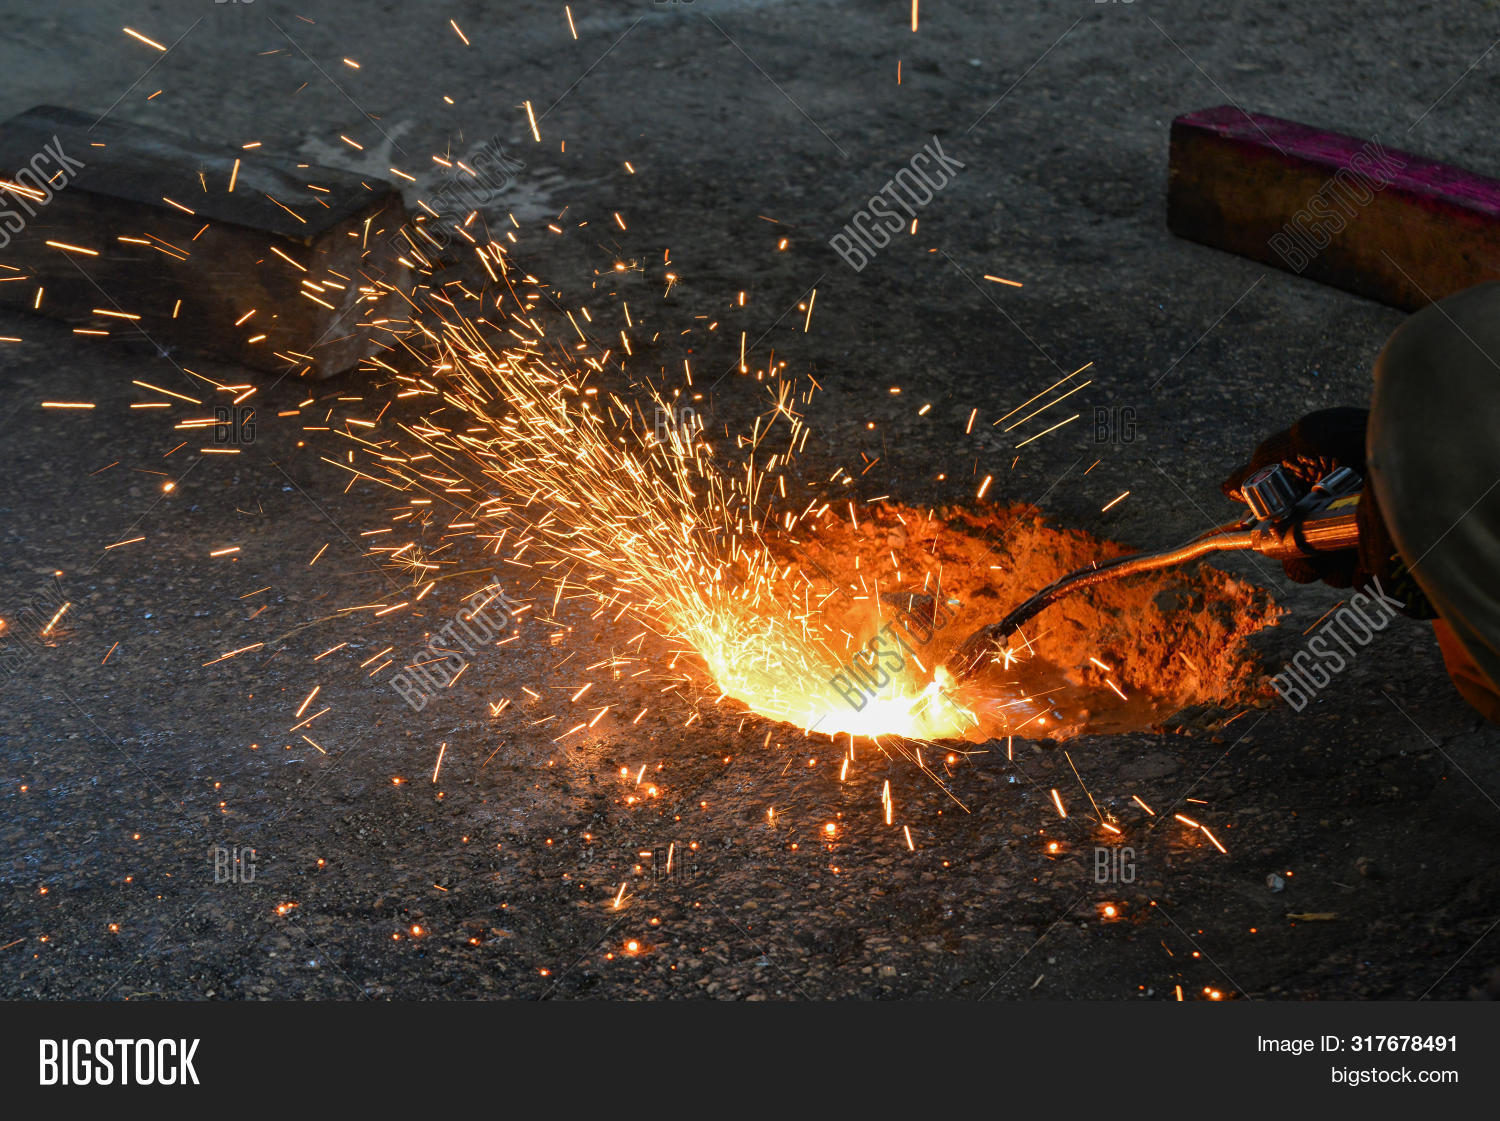 A Gas Cutter In Production, A Welder Removes Unnecessary Metal Residues With A Gas Cutter, Sparks Fl